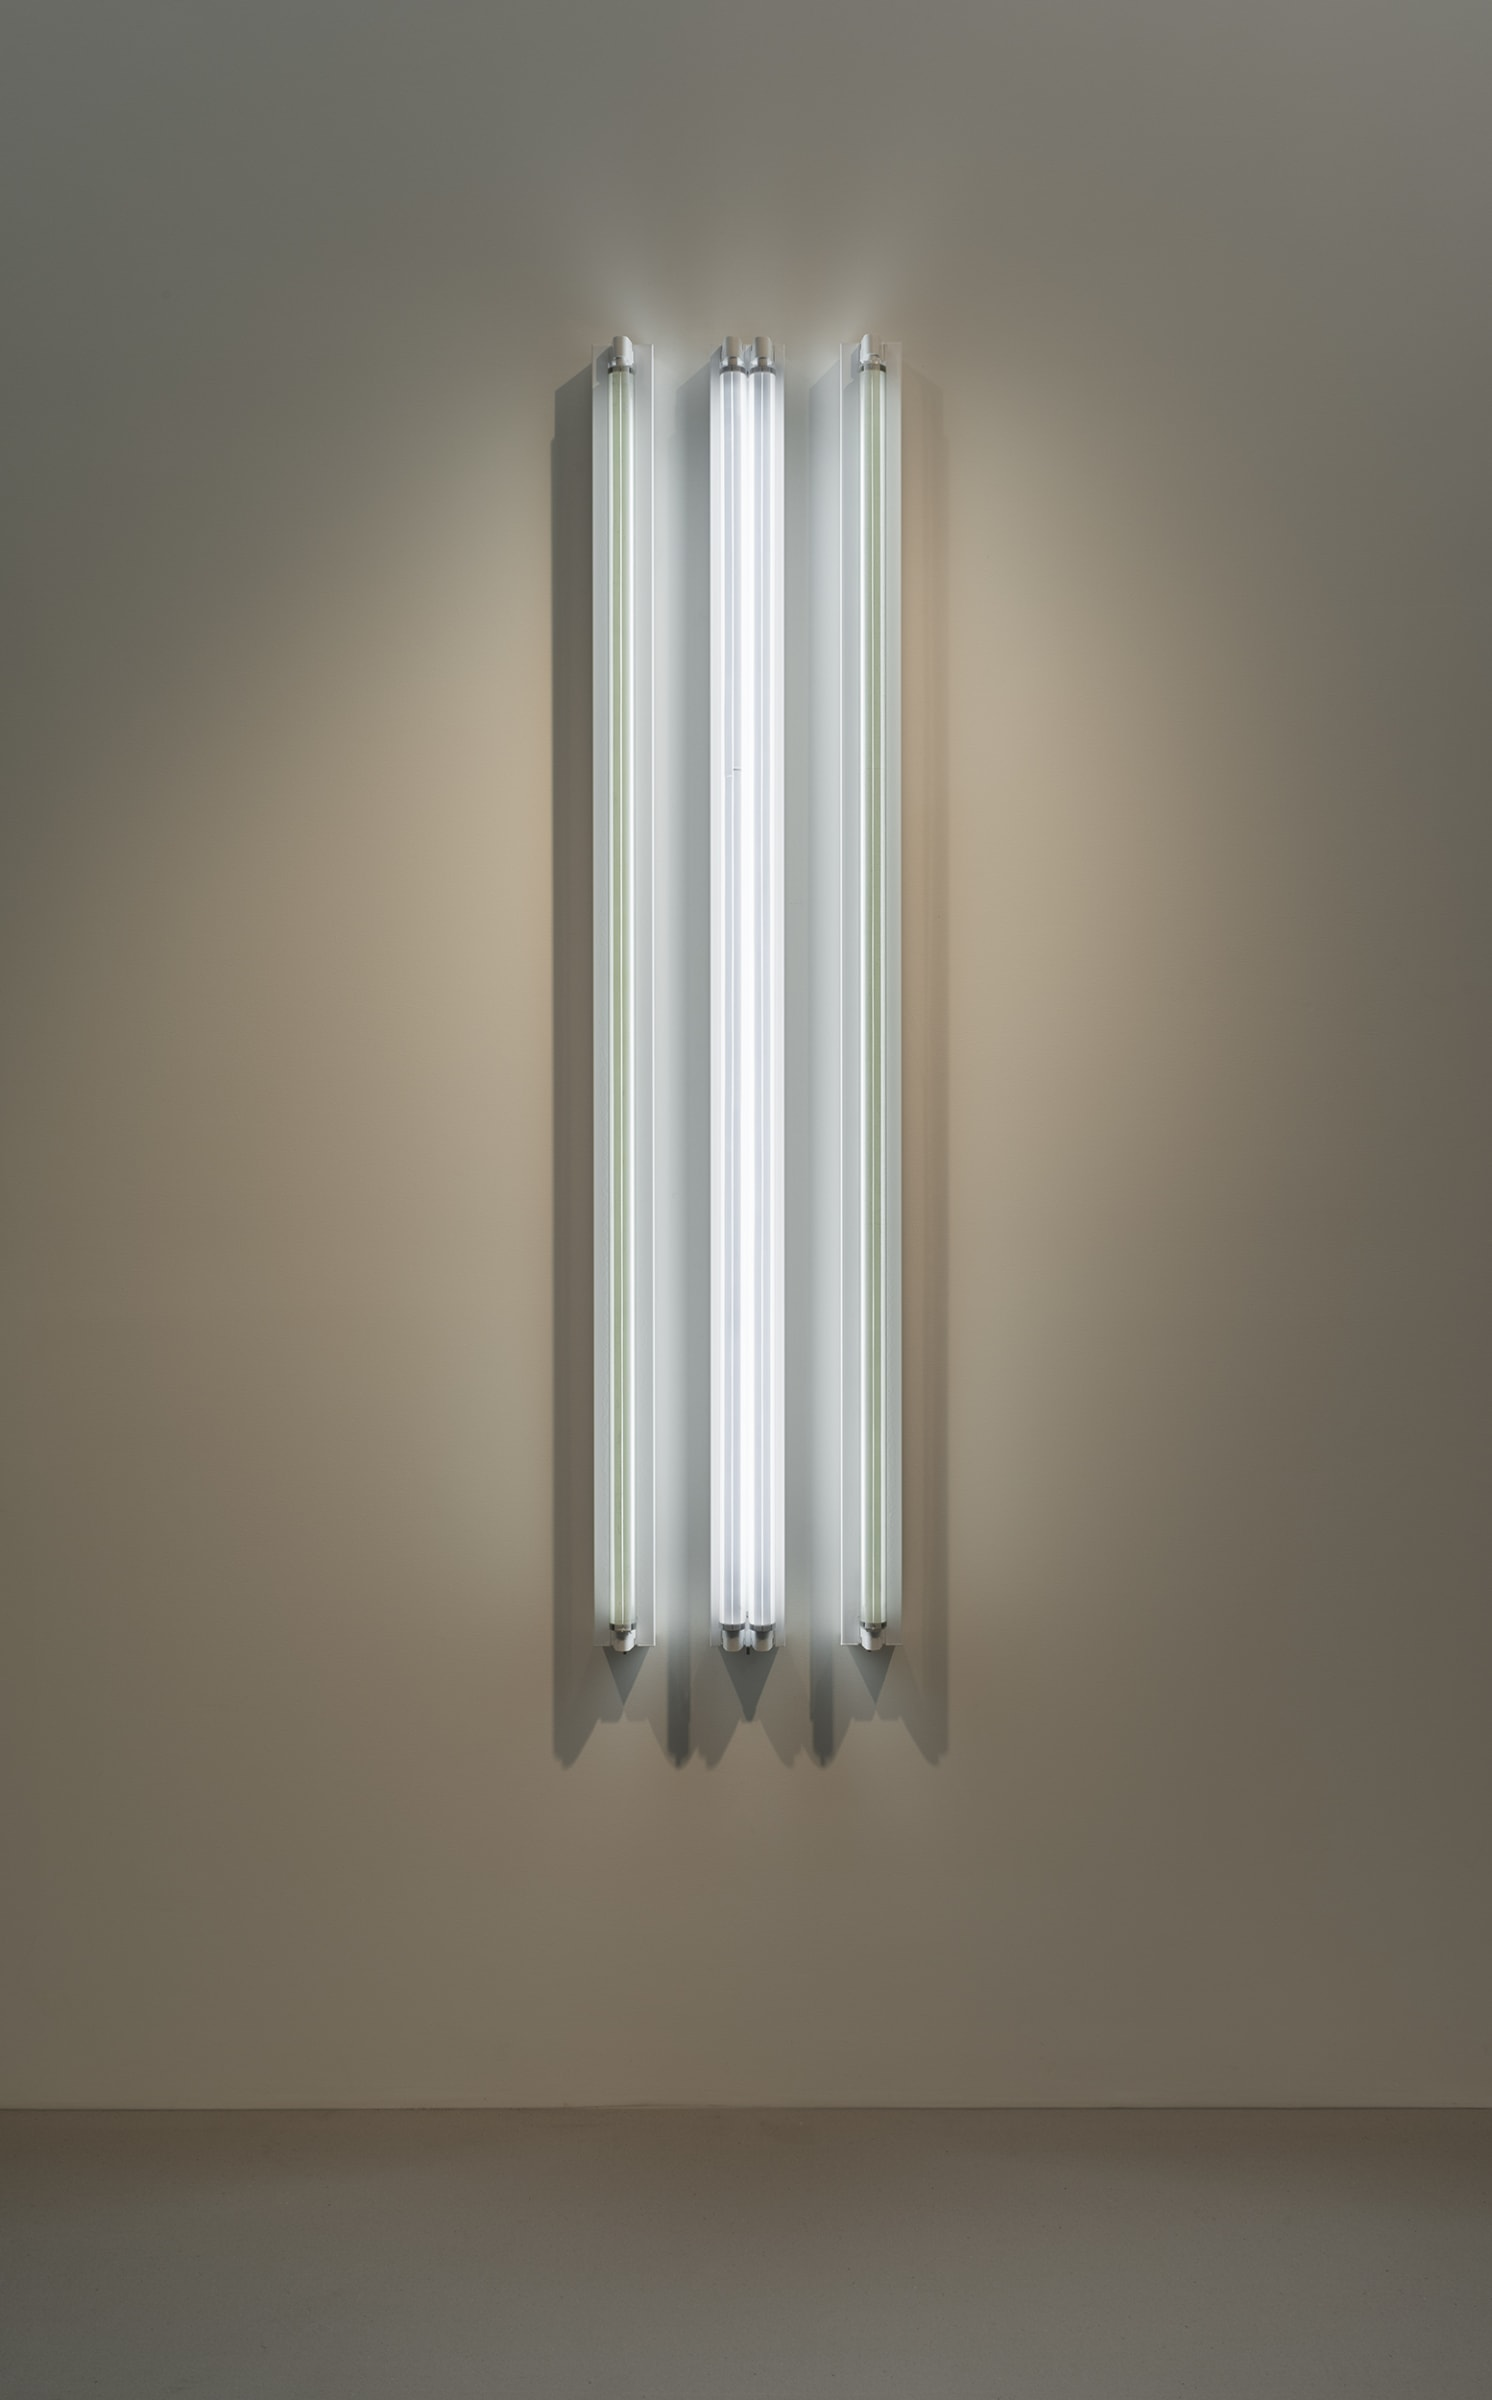 "<span class=""link fancybox-details-link""><a href=""/exhibitions/160/works/artworks14397/"">View Detail Page</a></span><div class=""artist""><strong>ROBERT IRWIN</strong></div><div class=""title""><em>#3x 6'D Four Fold</em>, 2016</div><div class=""medium"">light, shadow, reflection, color<br>Grey#2 / Pale Blue TWS / Grey#2</div><div class=""dimensions"">183 x 41 x 11 cm<br>72 1/8 x 16 1/4 x 4 1/4 in</div>"